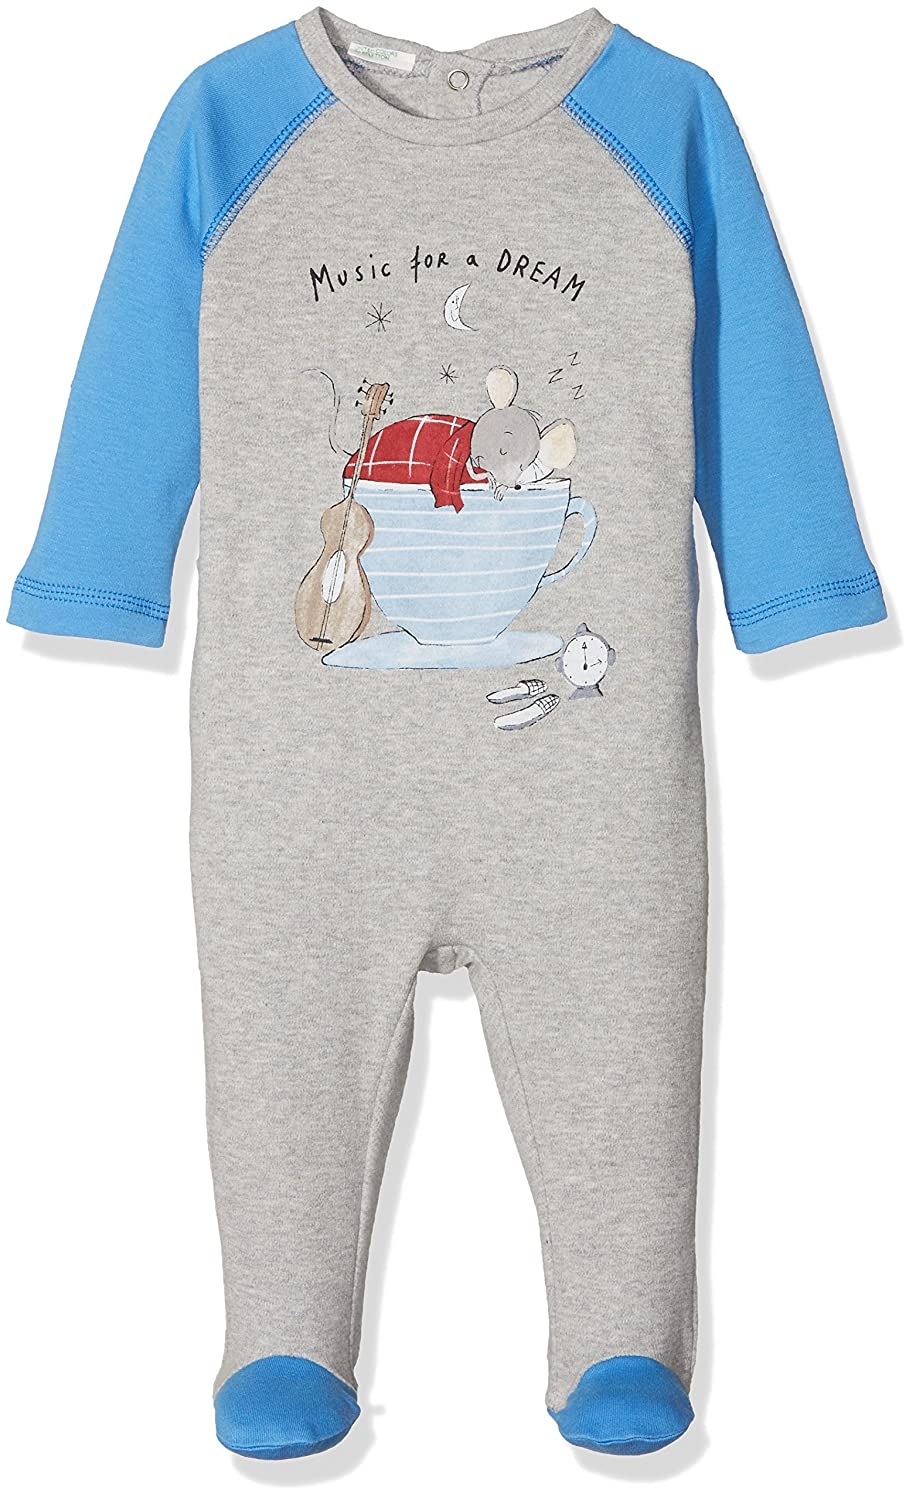 United Colors of Benetton Baby Boys' Pyjama Overall with Print Bottoms 37930T105